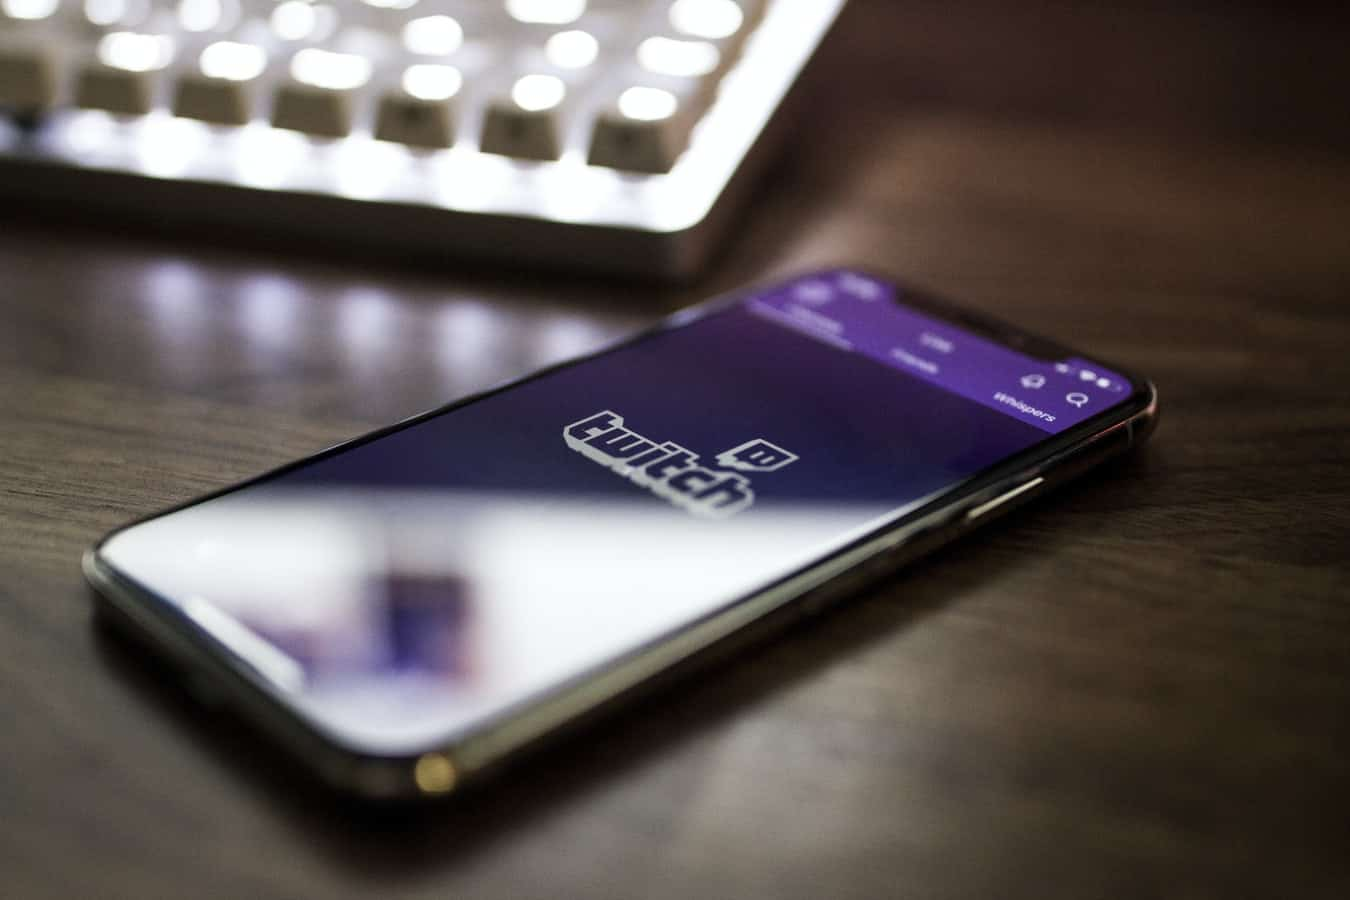 Twitch on phone